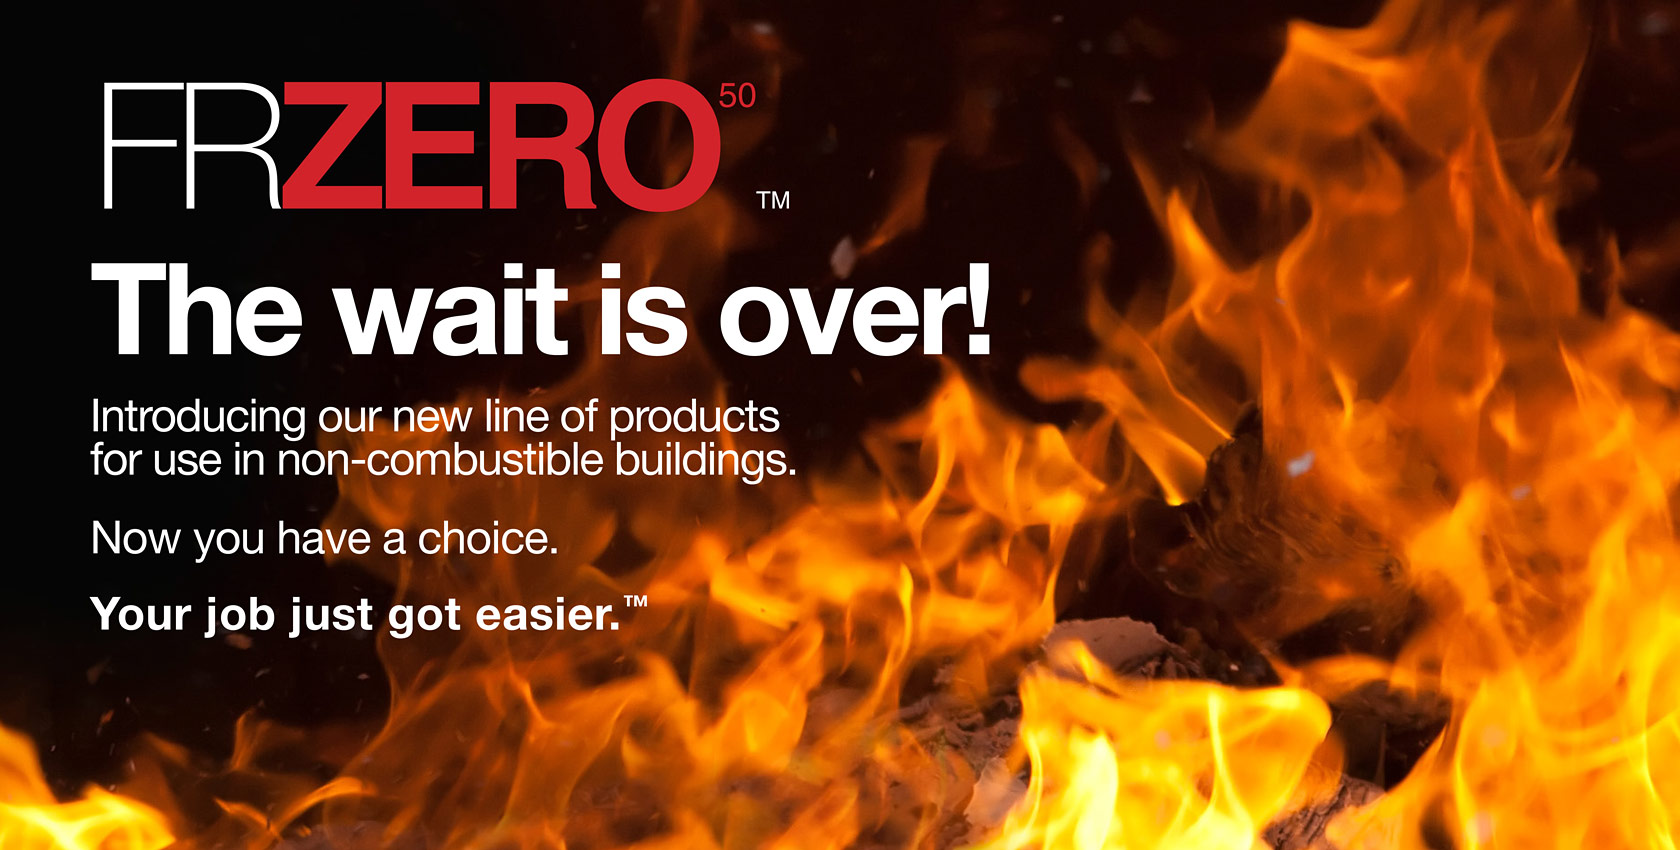 non-combustible products, FRZERO